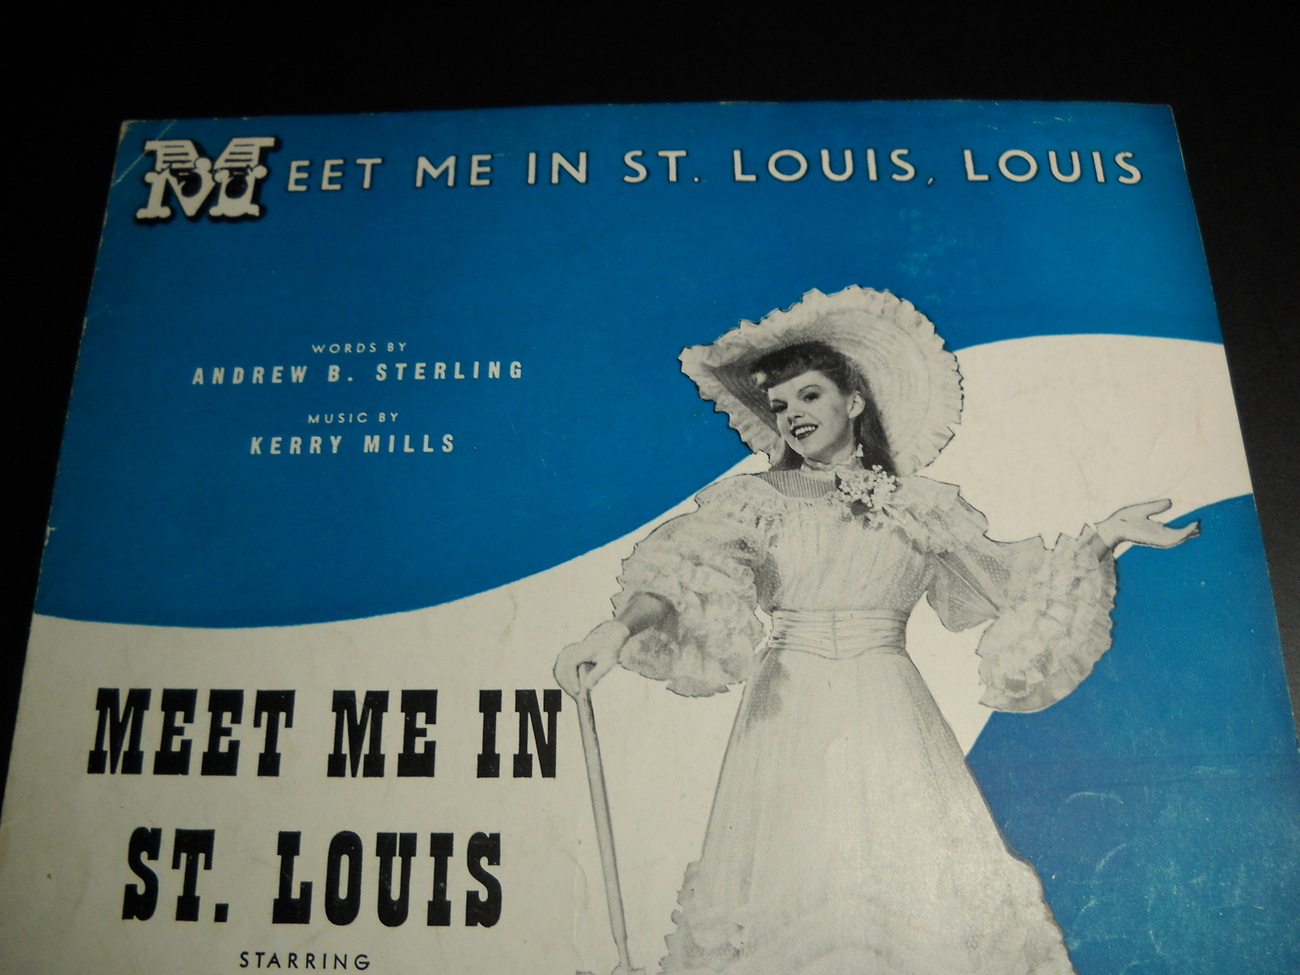 Sheet_music_meet_me_in_st_louis_louis_judy_garland_1935_vogel_music_02